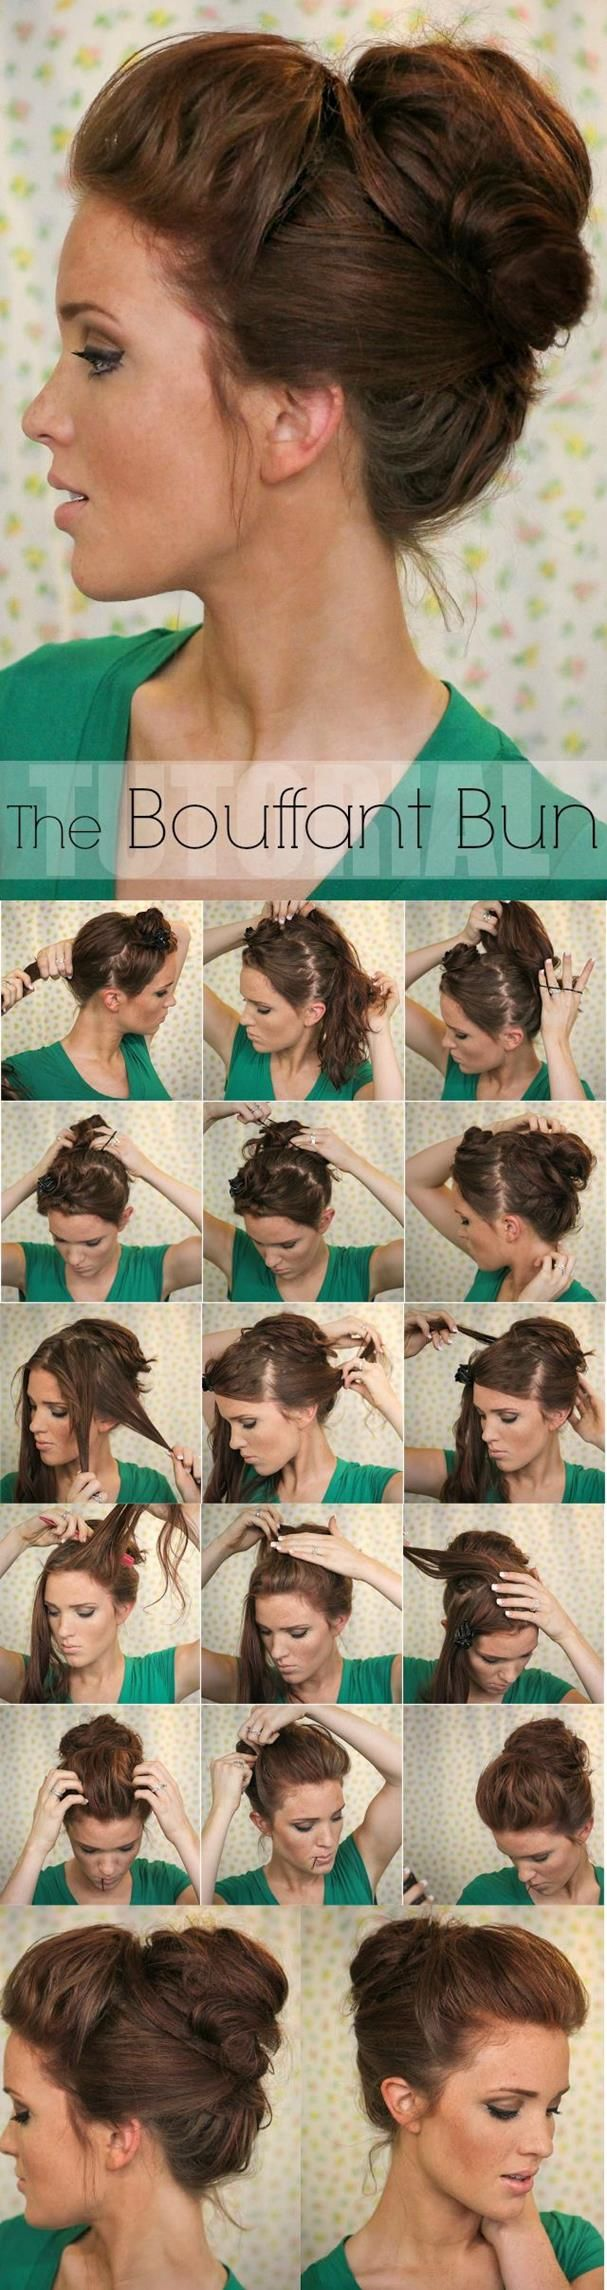 Super Easy Knotted Bun Updo and Simple Bun Hairstyle Tutorials .. that looks like a lot of steps, but I will give it a try one day